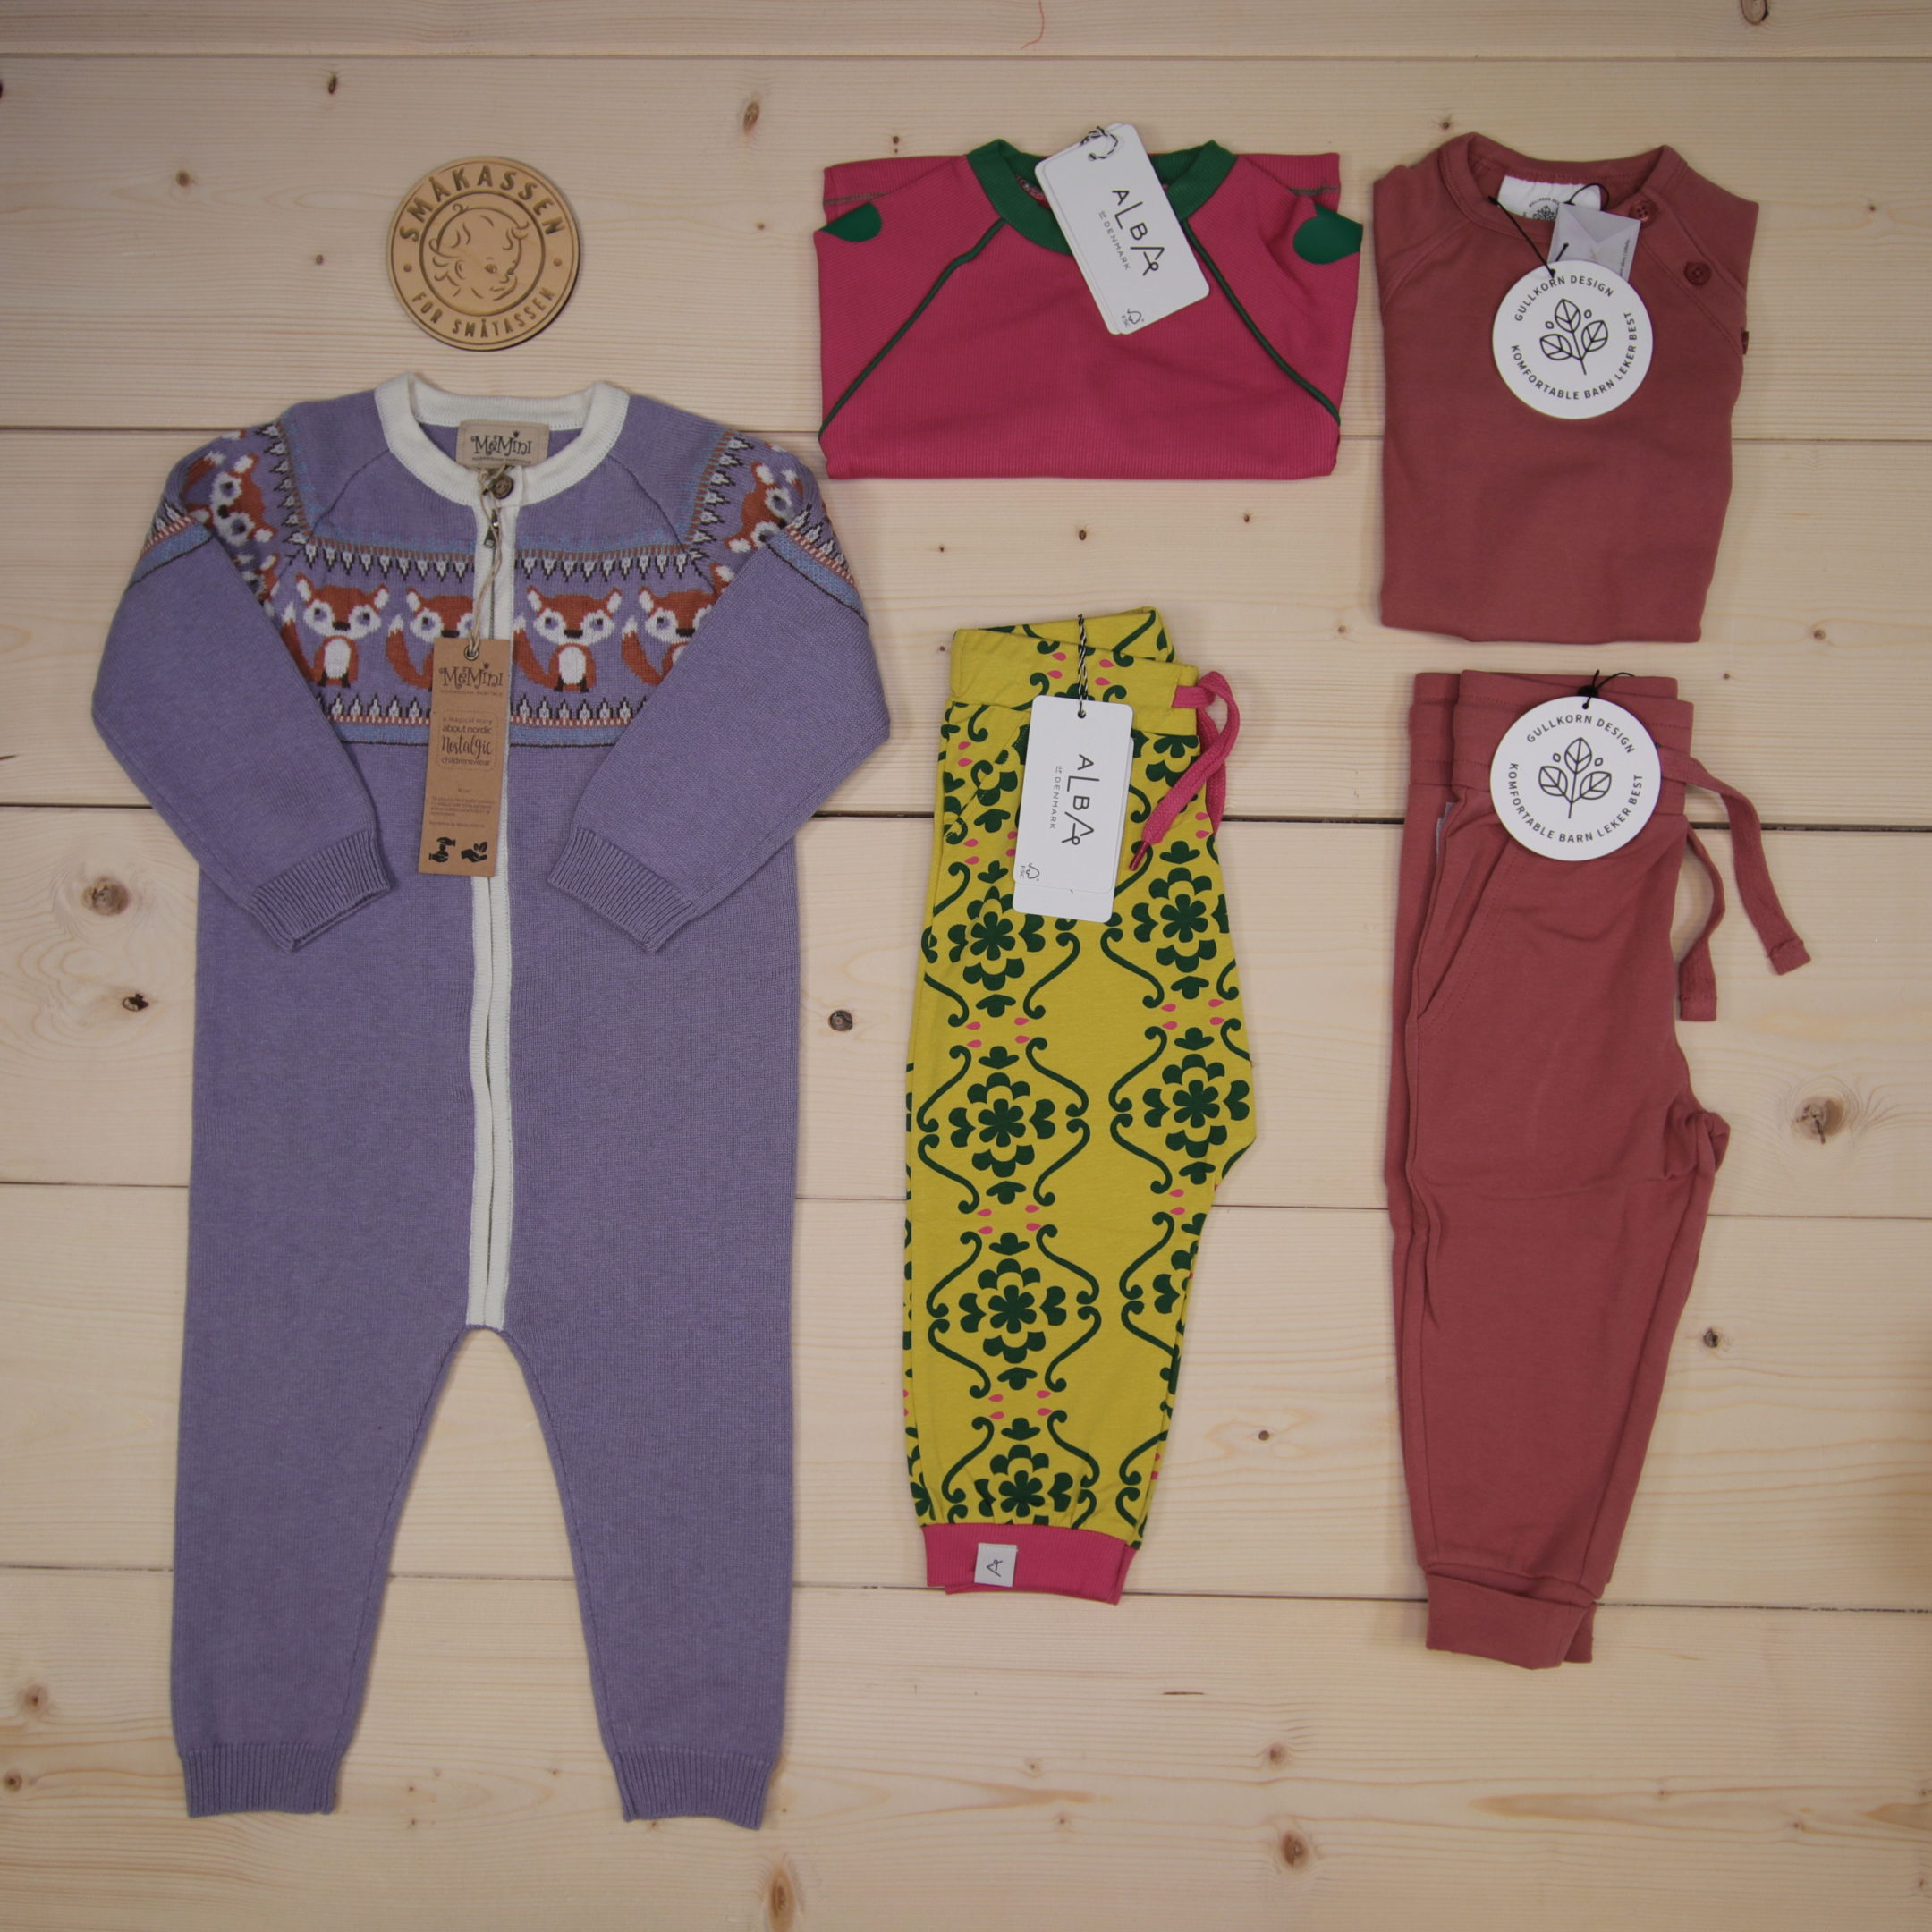 We sent these outfits to Milano, Italy!  This is Småkassen that we prepared for a girl in the styles cute, cool, and colorful in size 86.